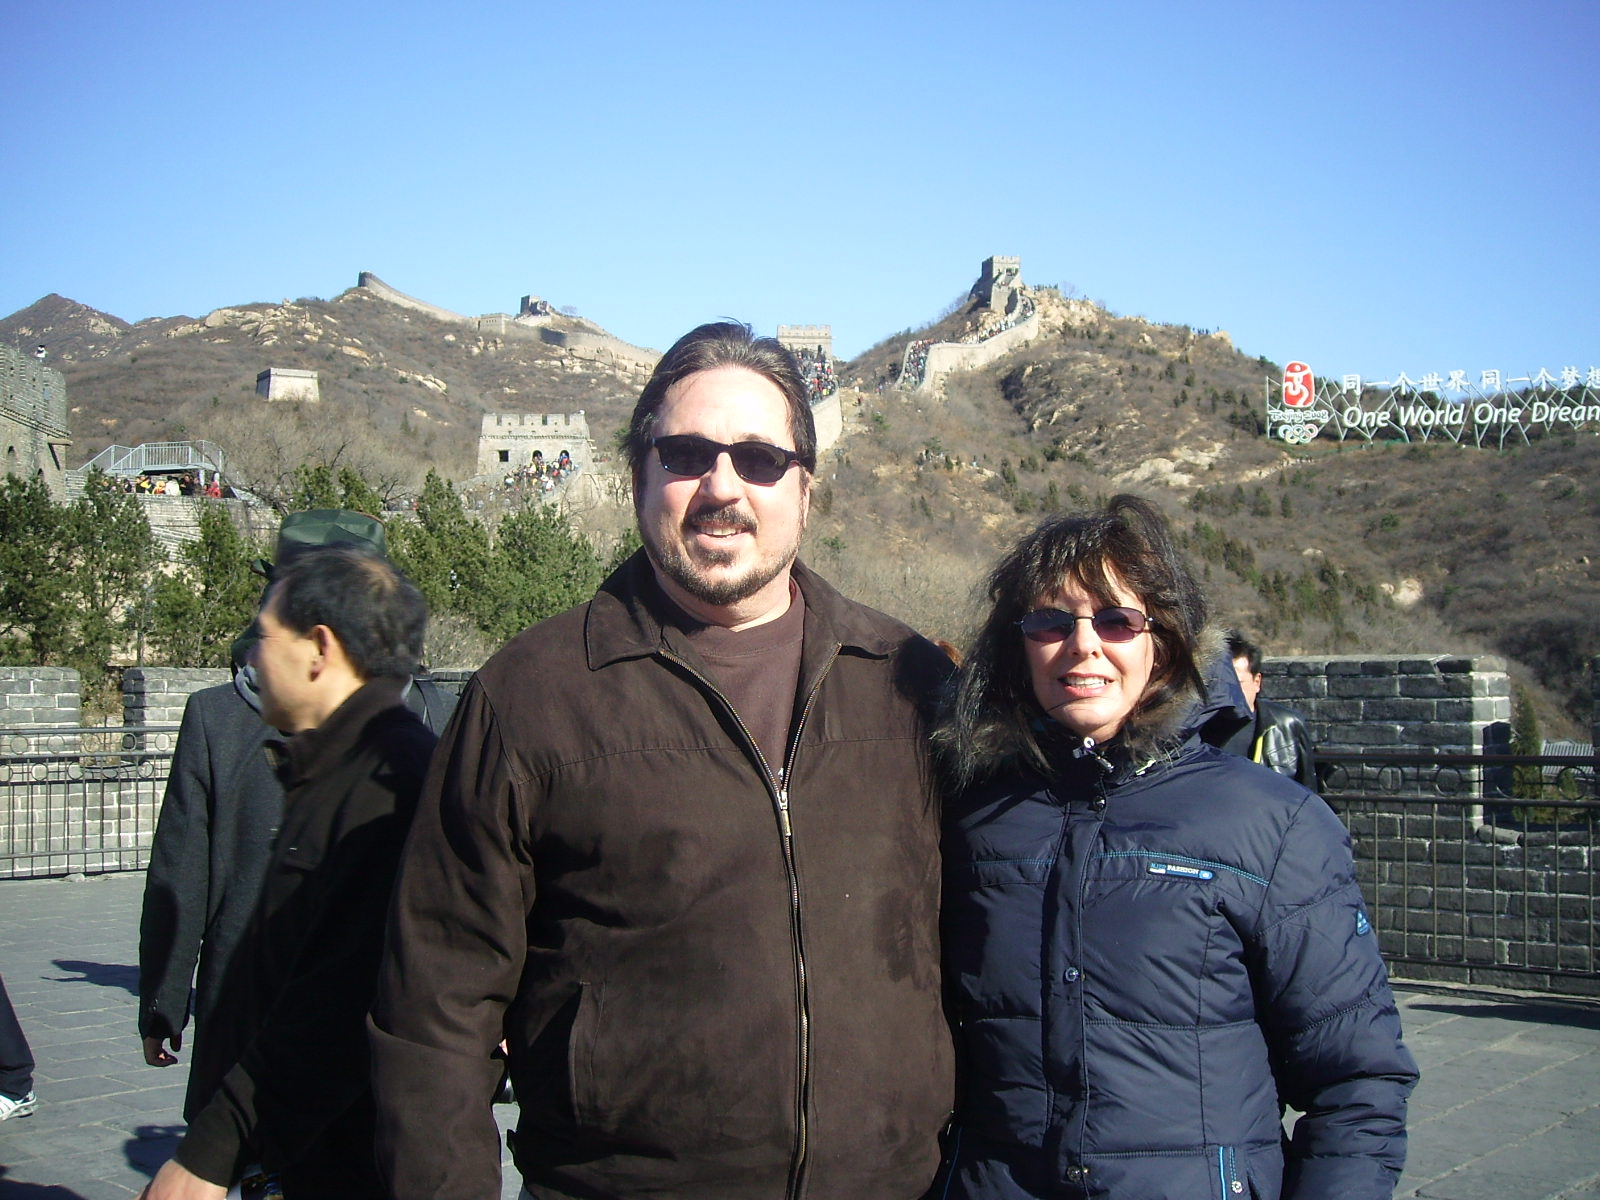 meet the naspa executive team: pictured above are President leo a. wrobel and technical support magazine editor in chief sharon m. wrobel when they were guests of the chinese academy of sciences. find more at www.leowrobel.com.